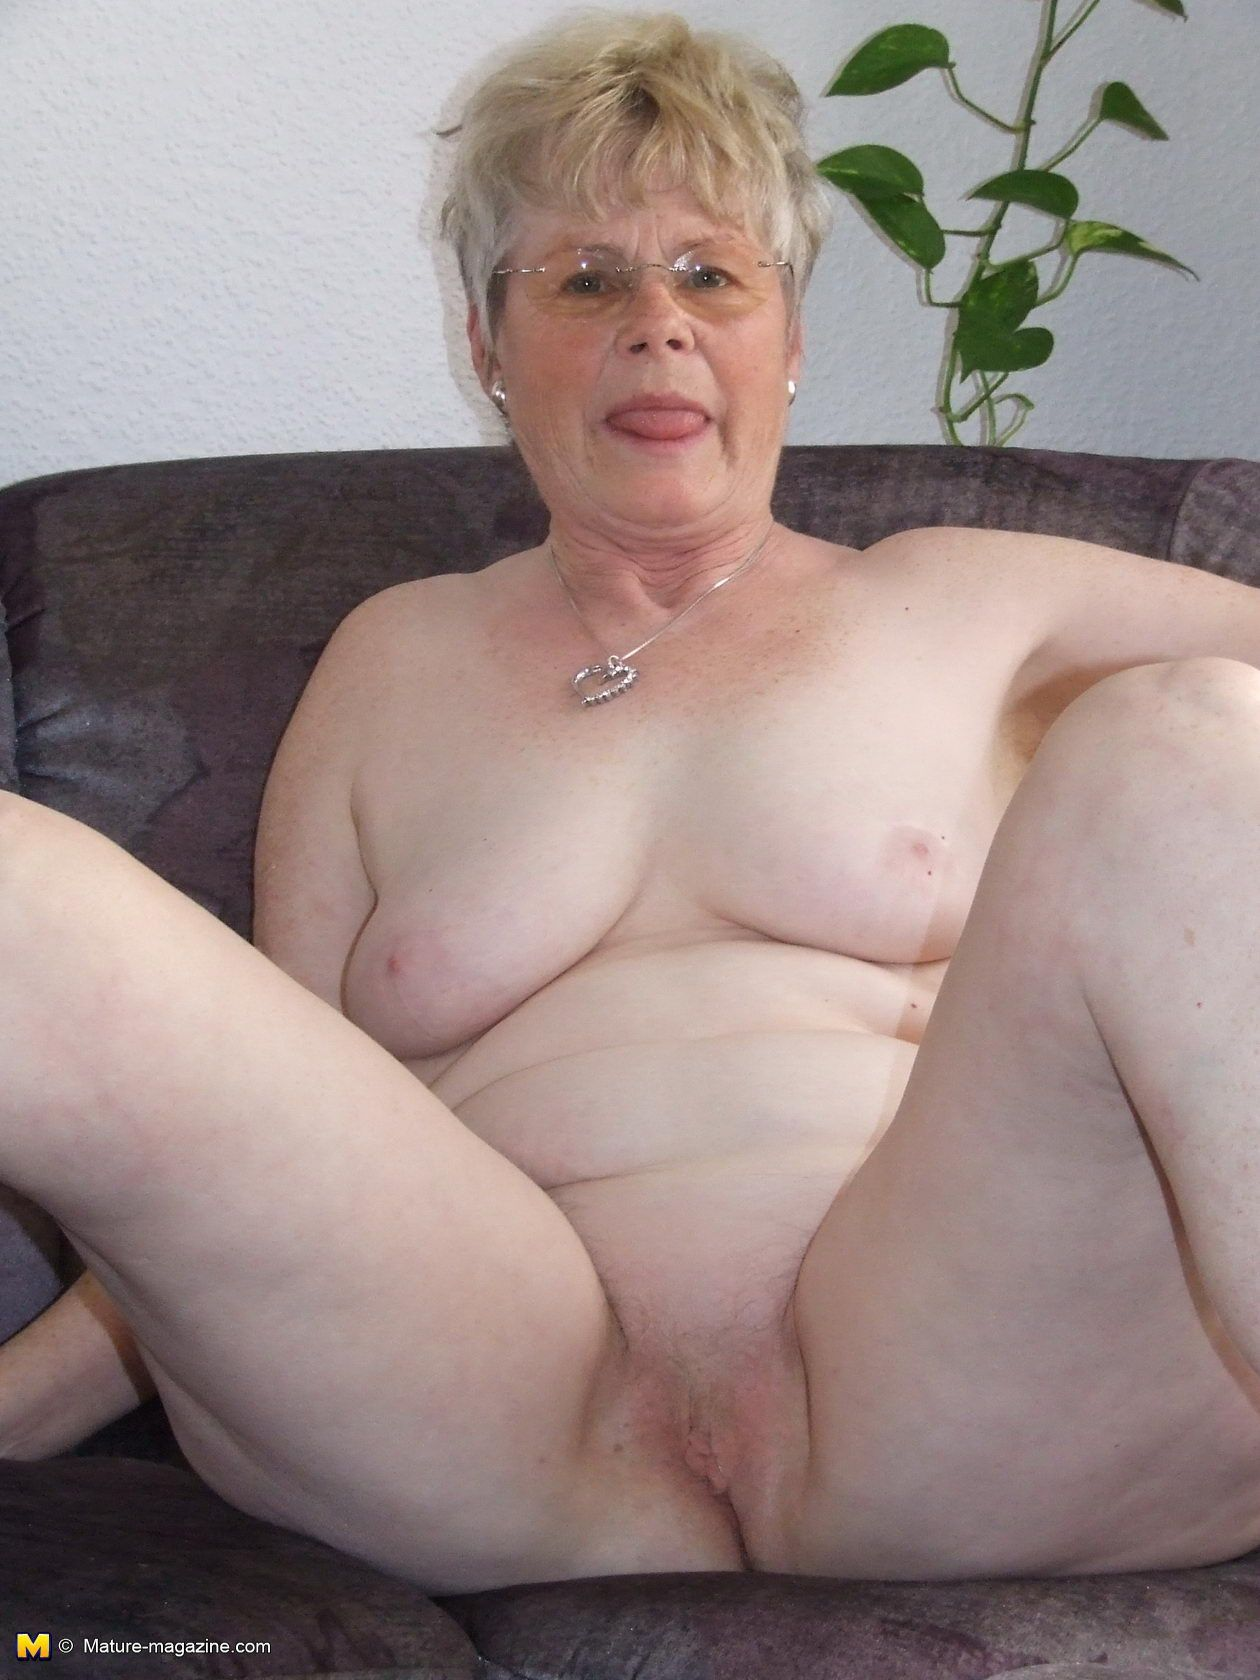 The oldest nude women